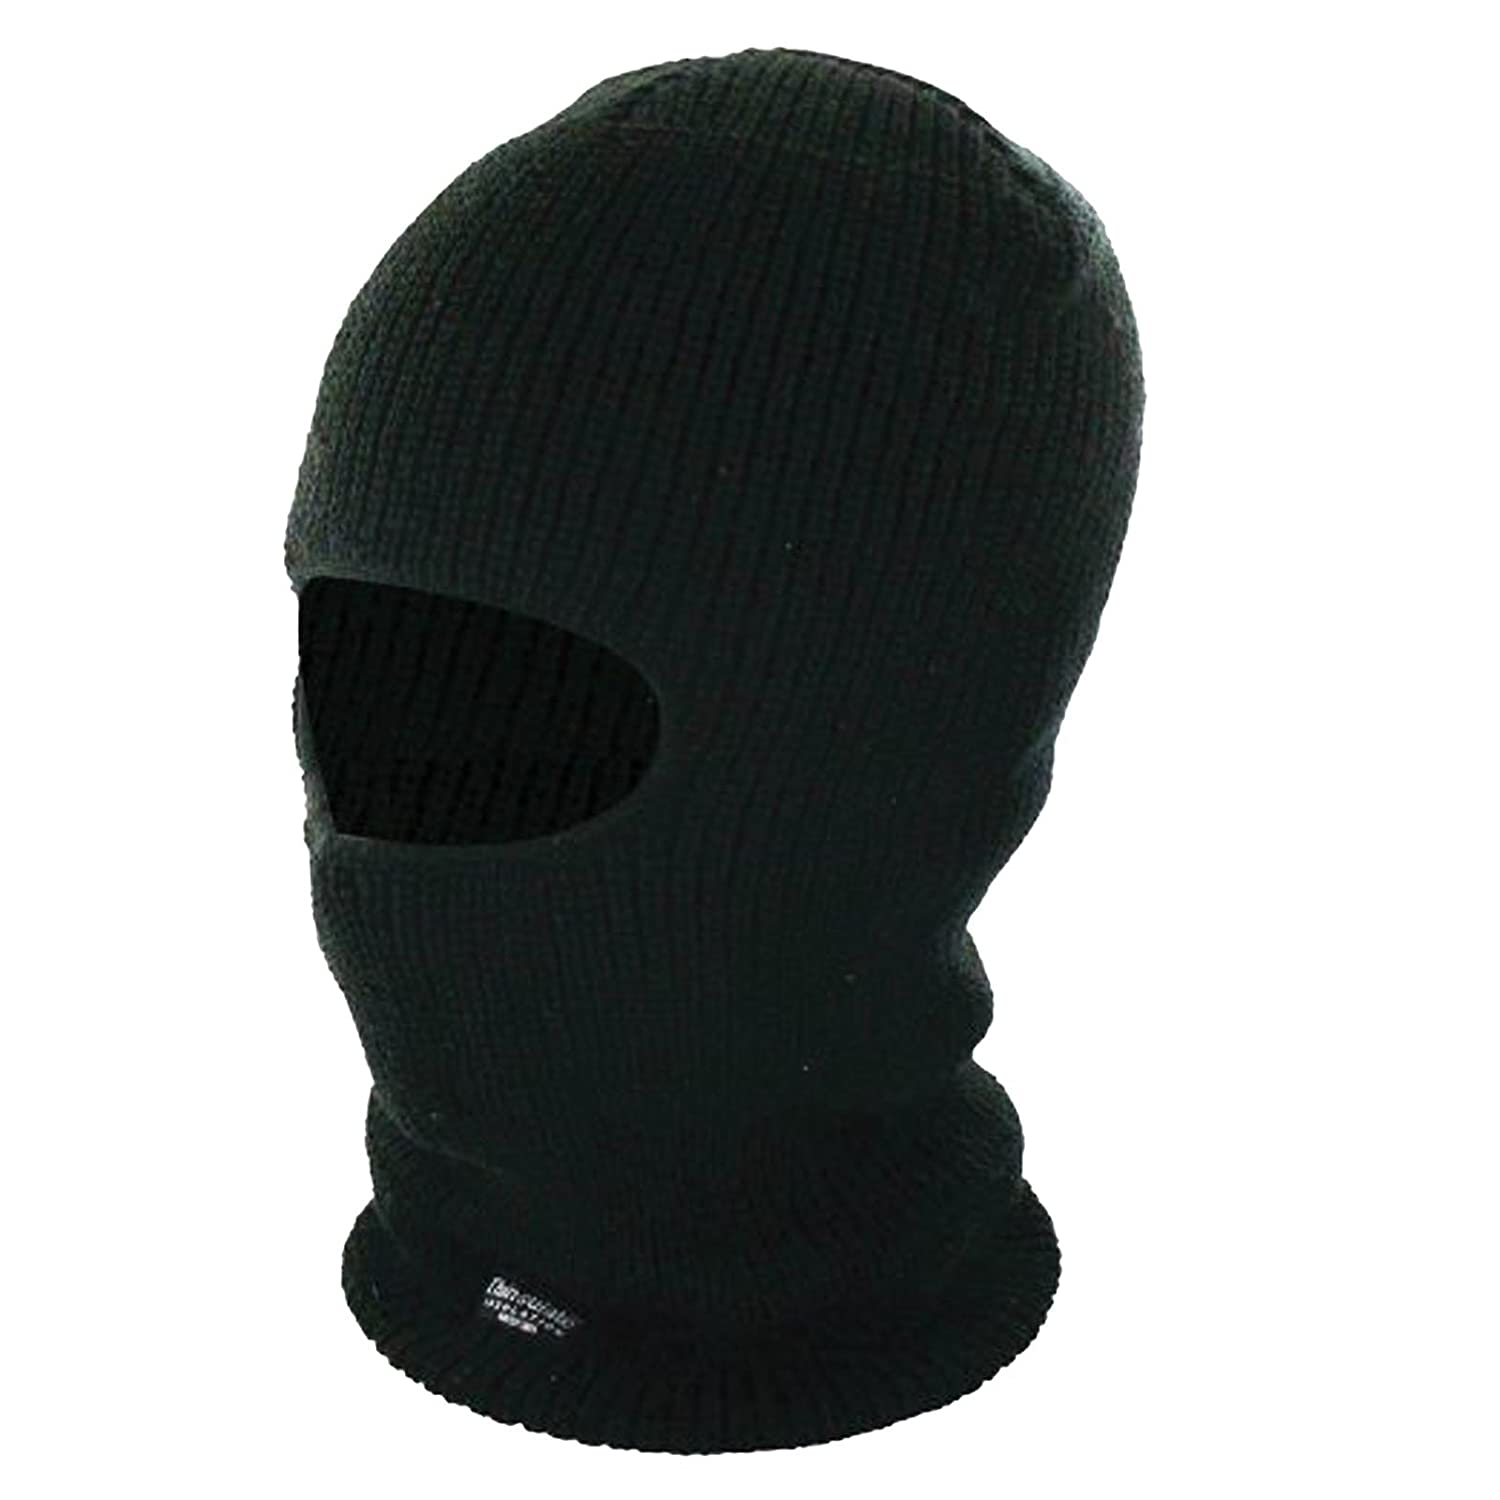 4f061e7b647 THINSULATE BALACLAVA MENS BLACK THERMAL FLEECE LINED OPEN FACE WINTER HAT  SNOW